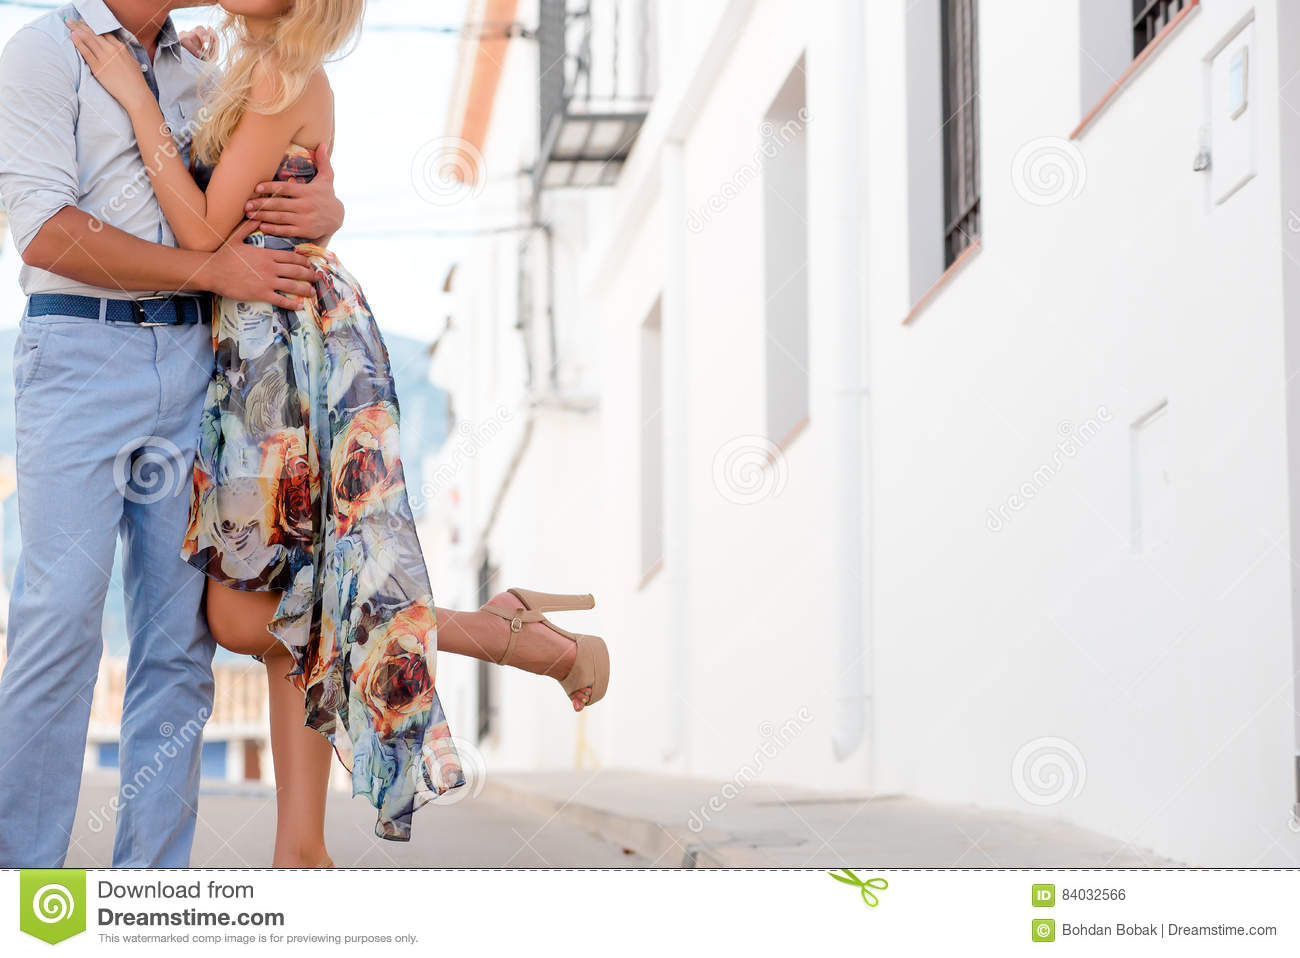 Couple having a date. Close-up of legs